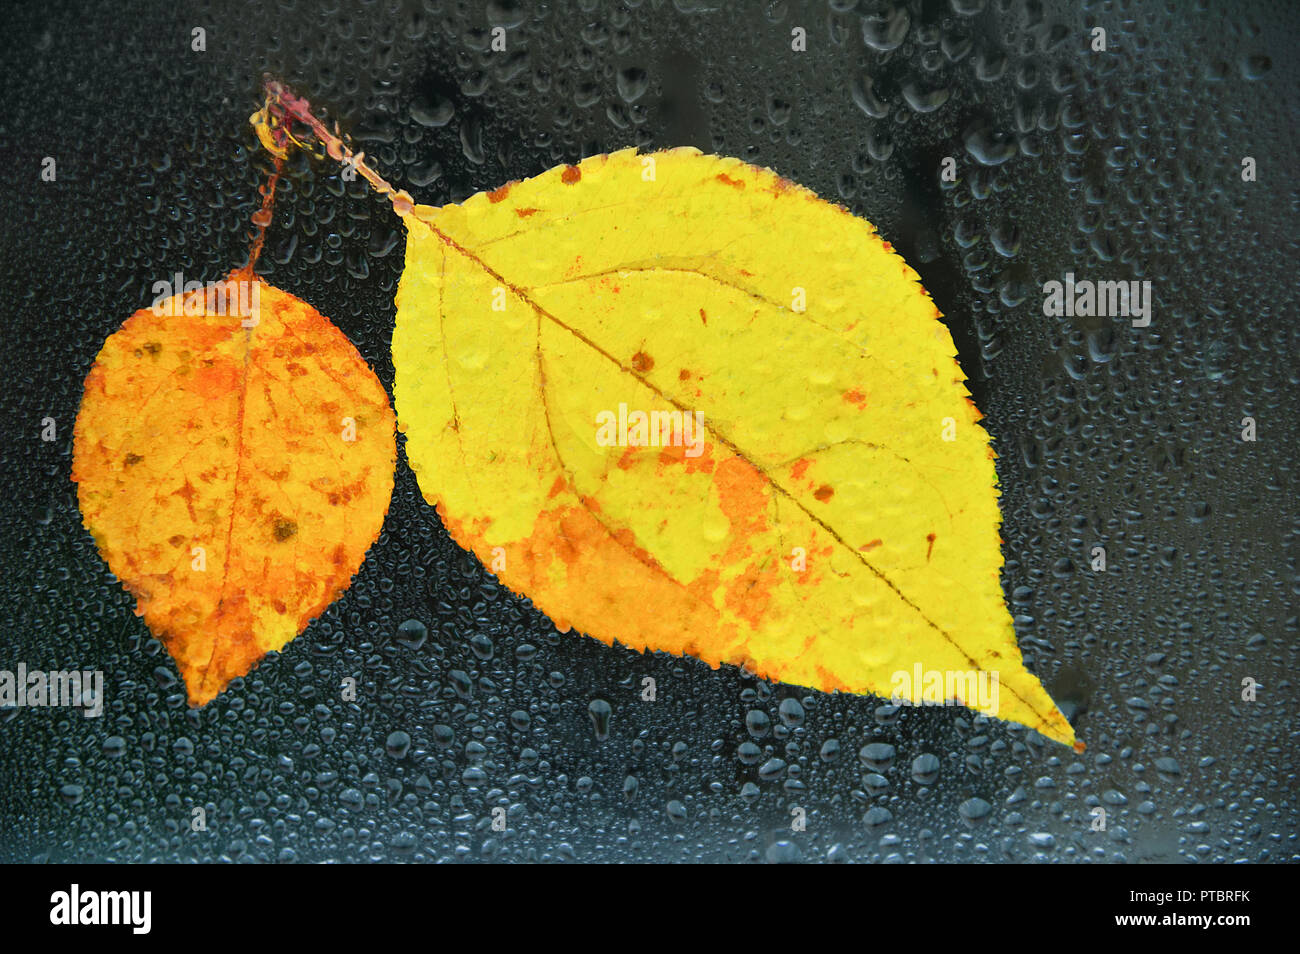 Autumn yellow leaves on wet glass in drops of water. Close-up Stock Photo